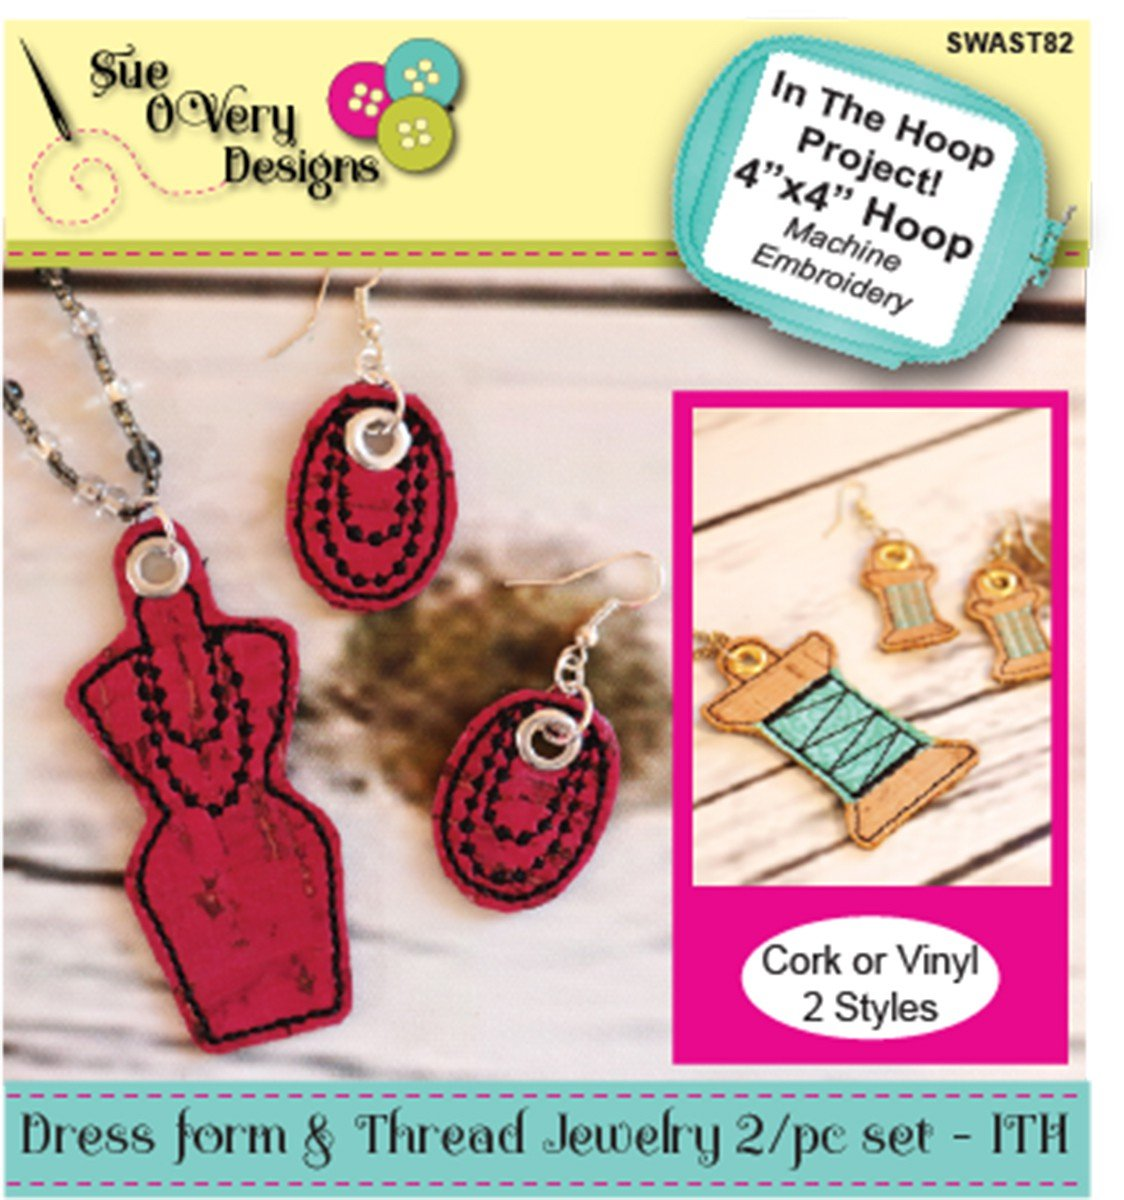 Dress form and Thread Jewerly 2pc Set - ITH